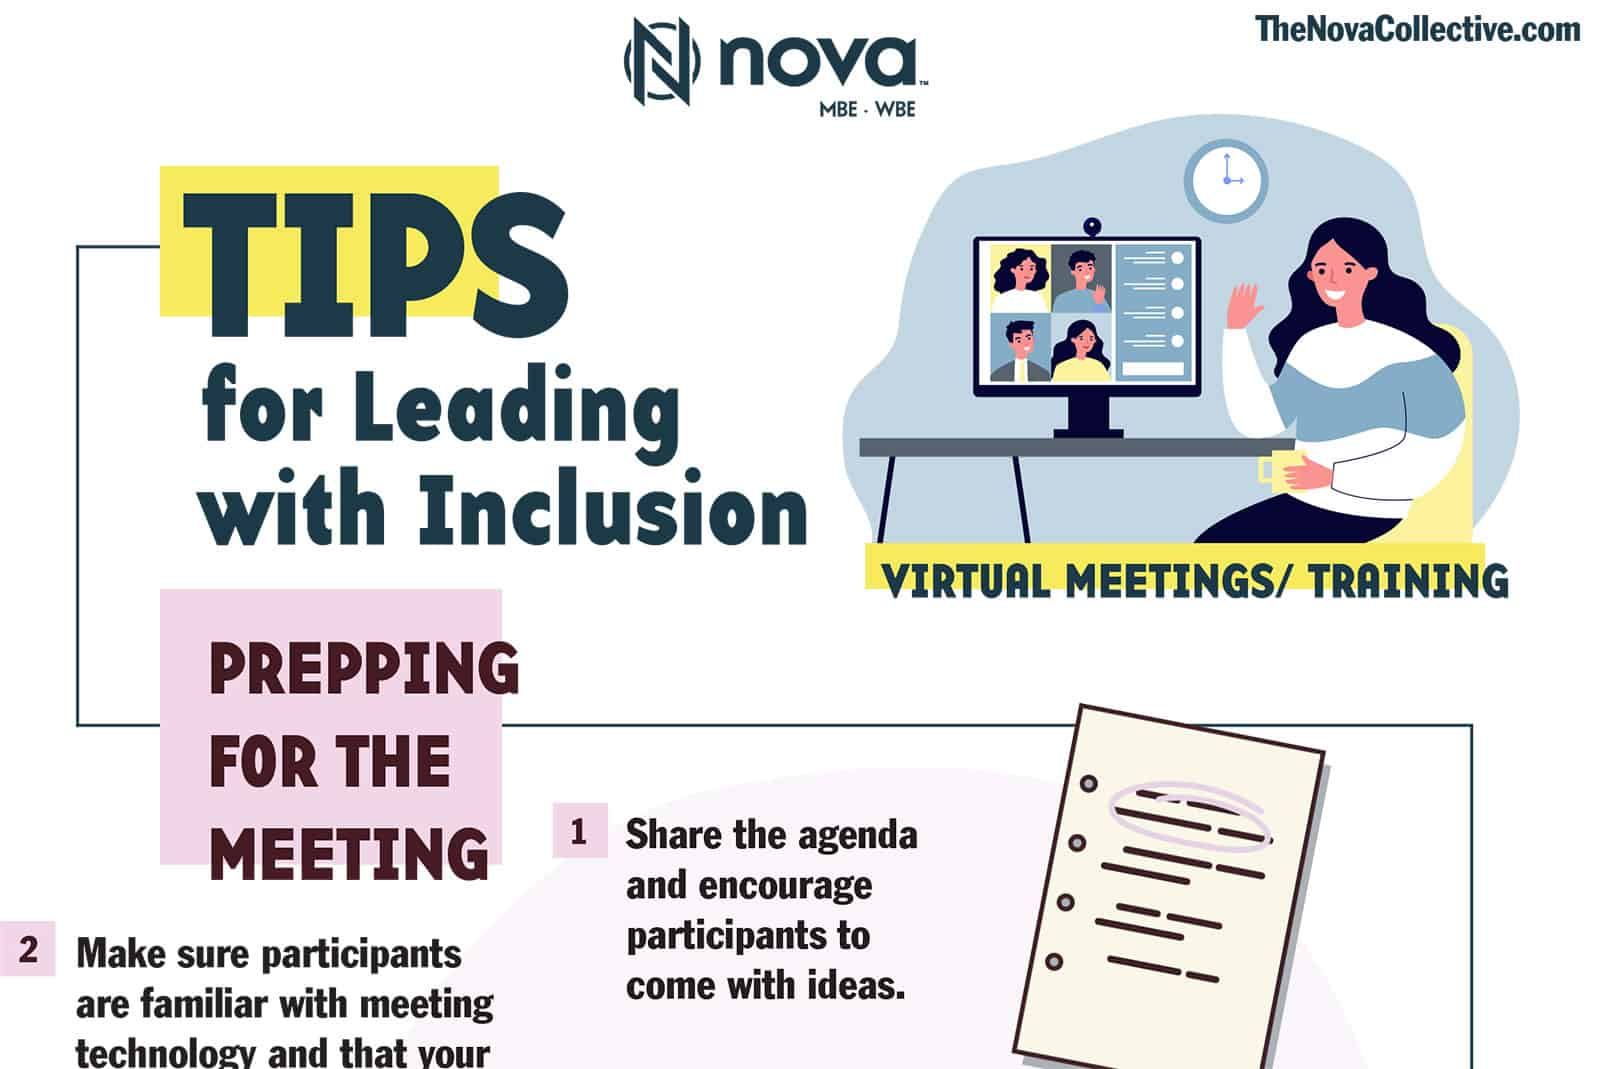 Tips for Leading with Inclusion from Nova Collective